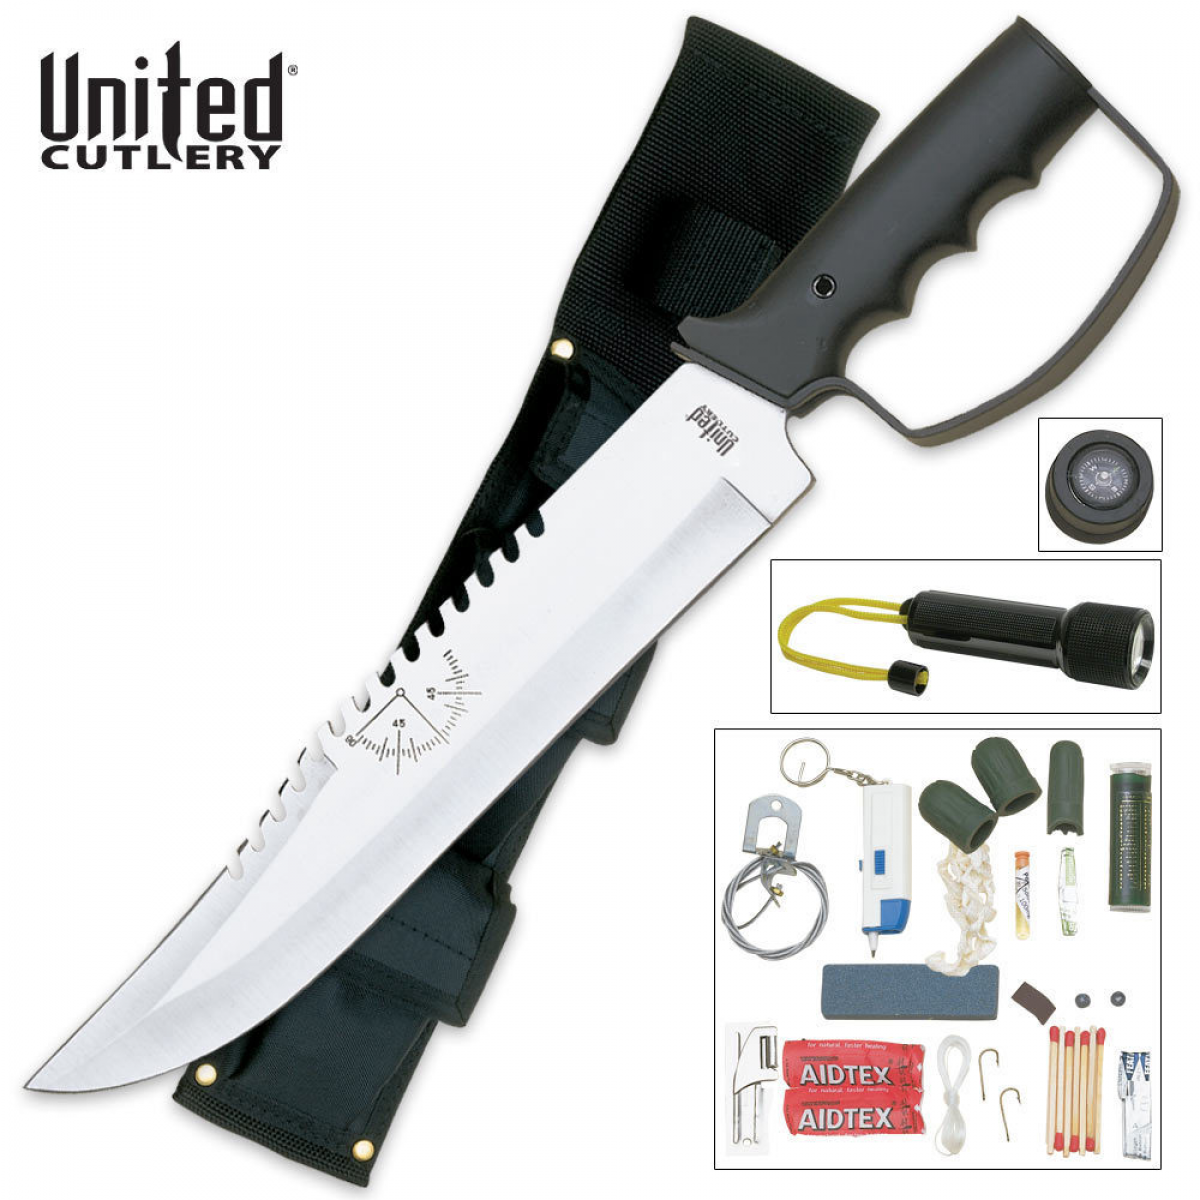 Bushmaster Survival Knife and Kit